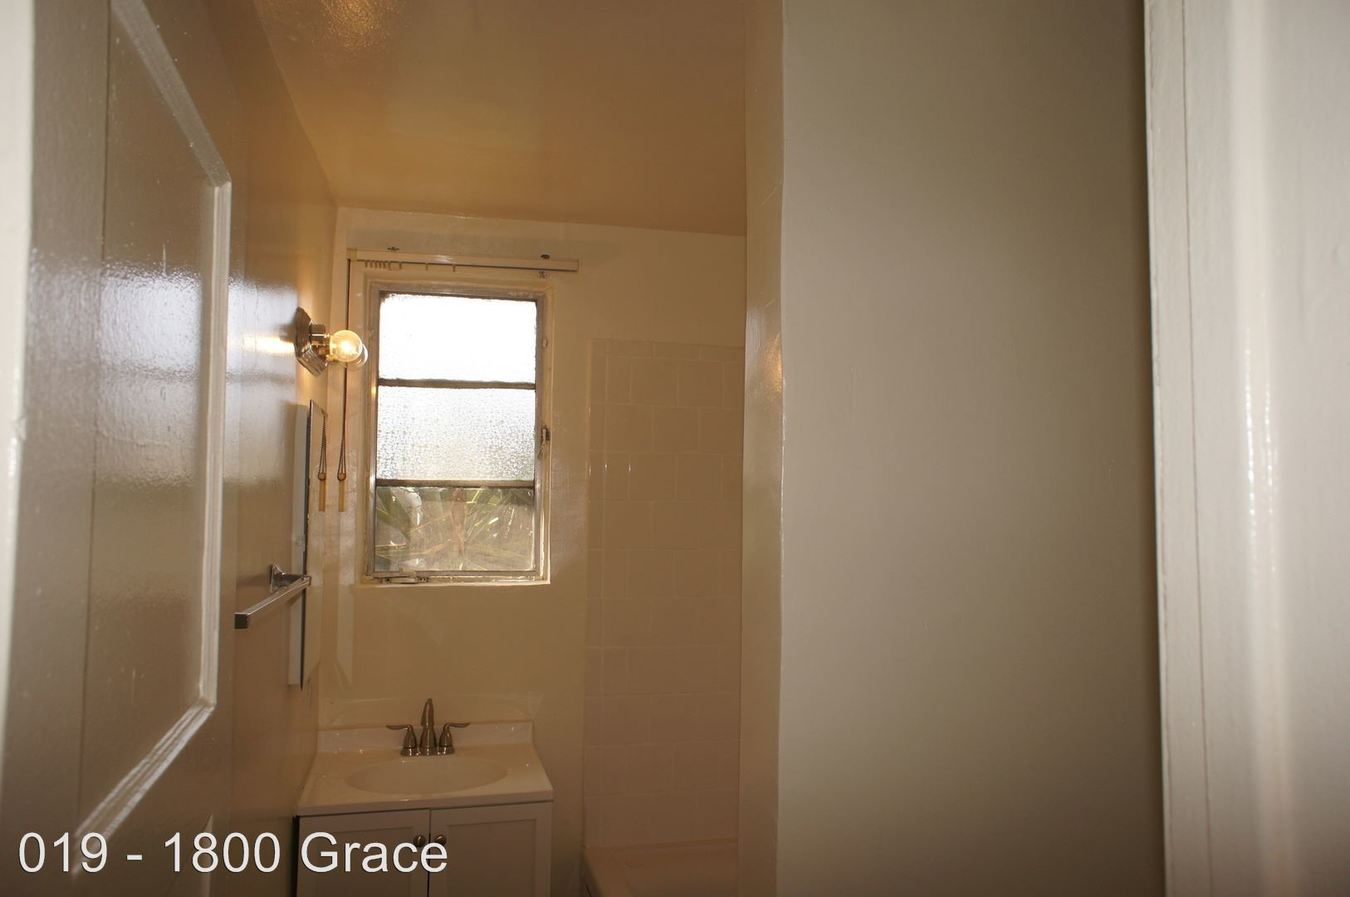 Studio 1 Bathroom Apartment for rent at 1800 Grace Ave. in Hollywood, CA